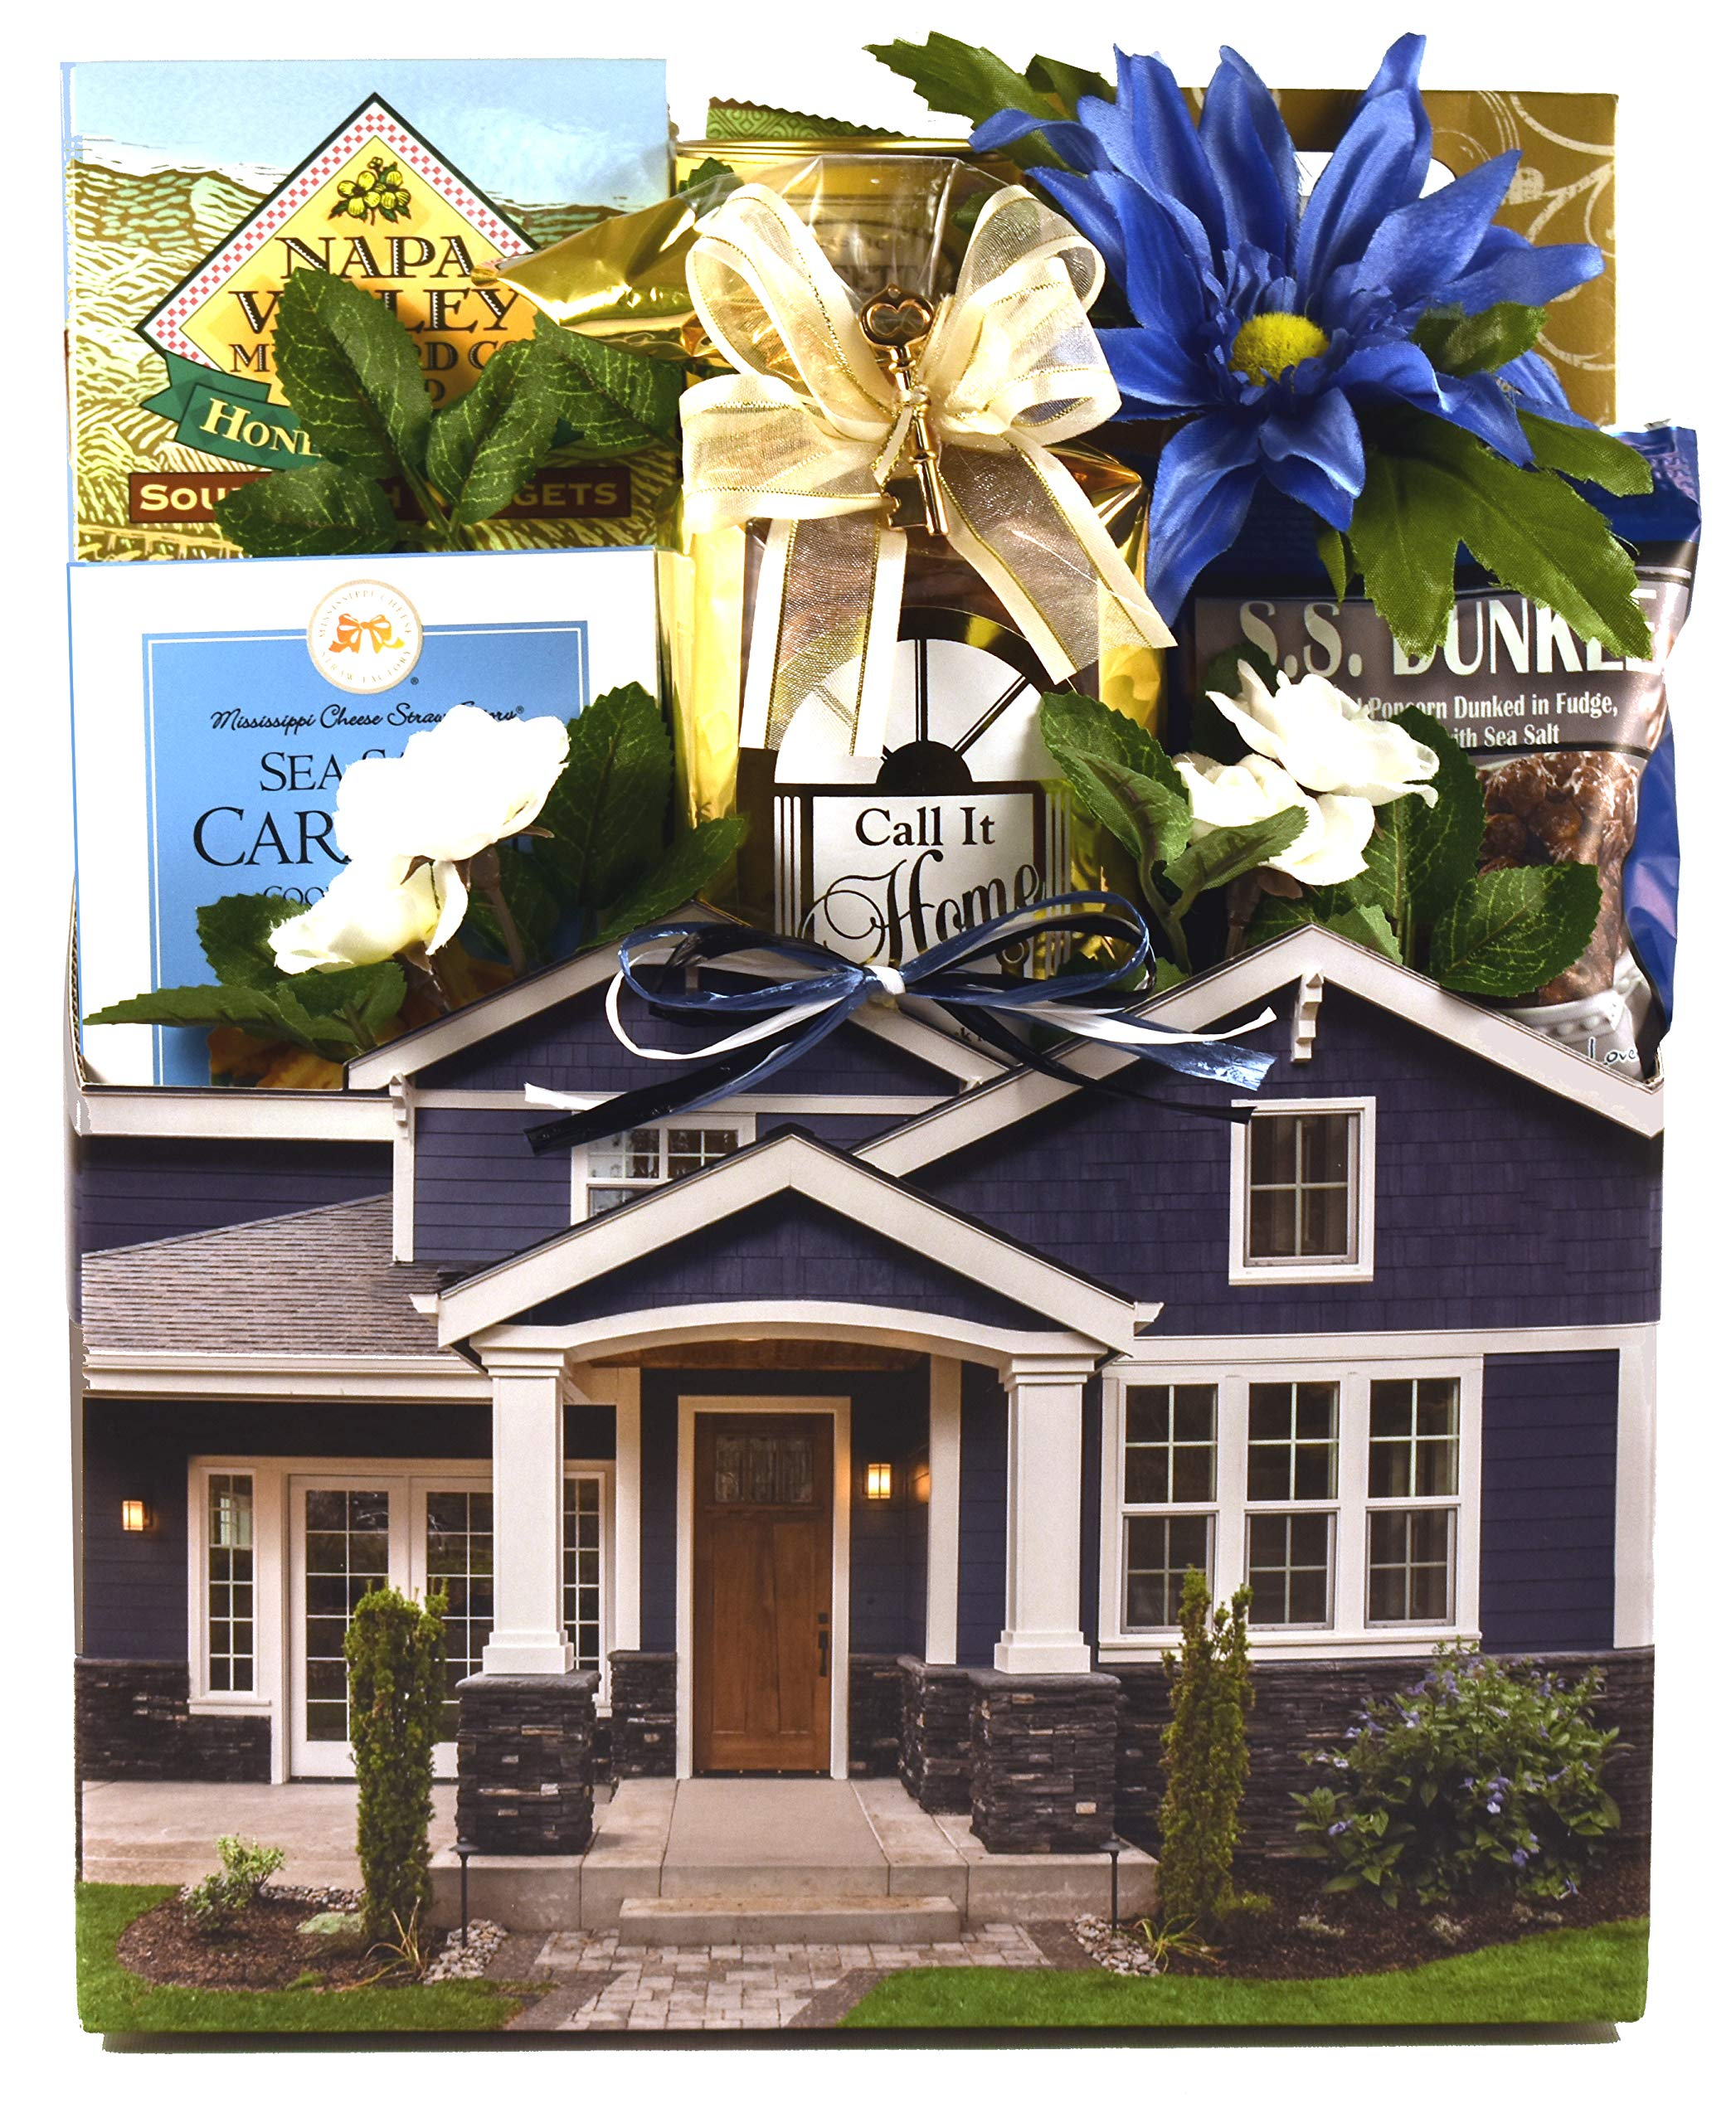 Housewarming Gift Basket For New Homeowners - Help Celebrate Their New House with a Basket Full Of Moving Day Treats by Gift Basket Village